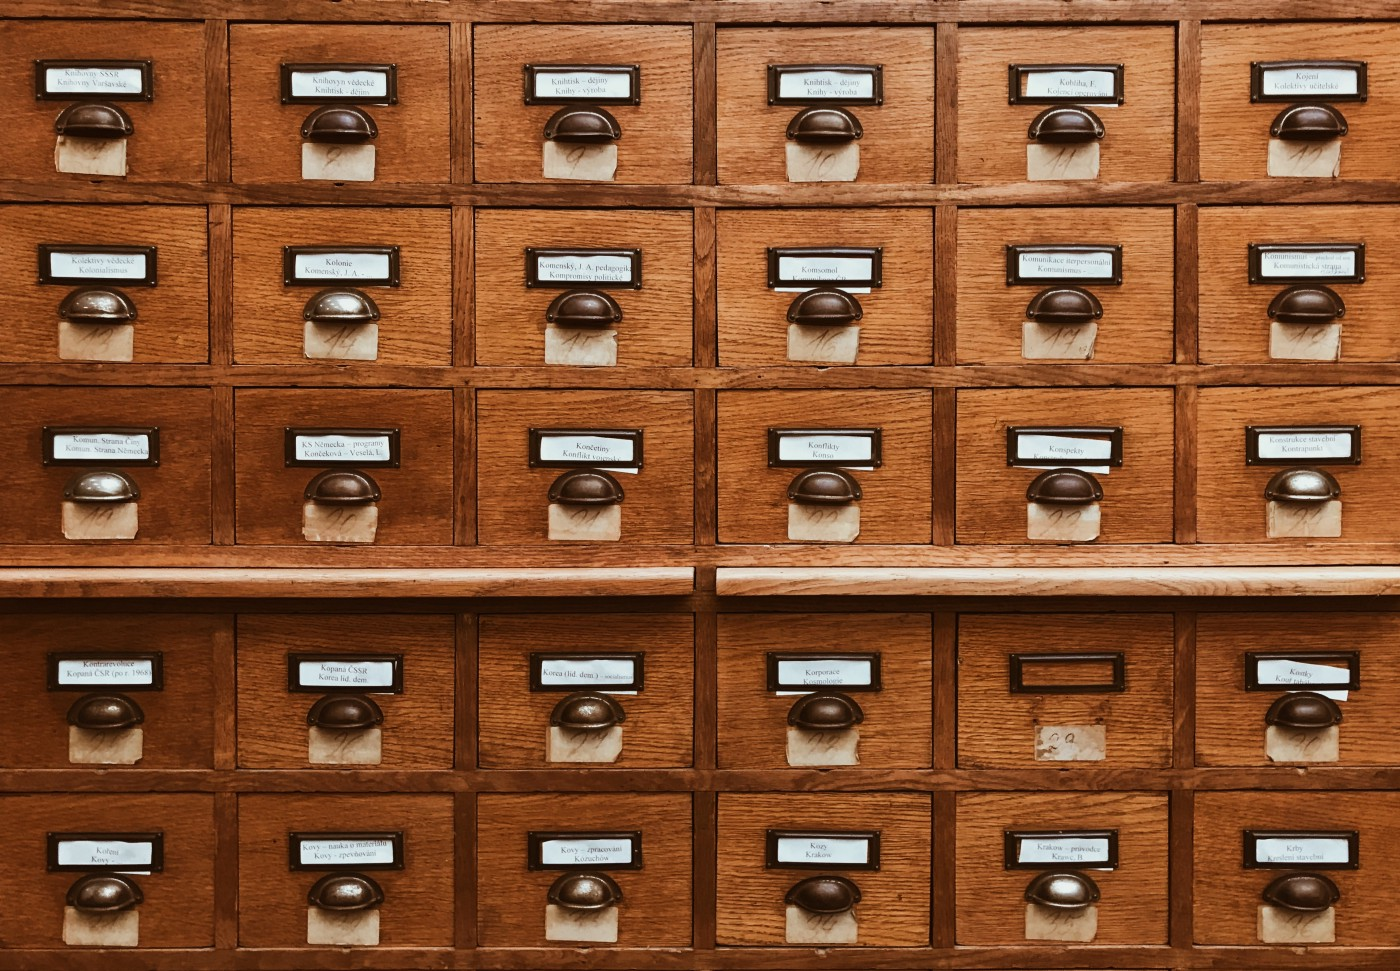 An offline database—file archive